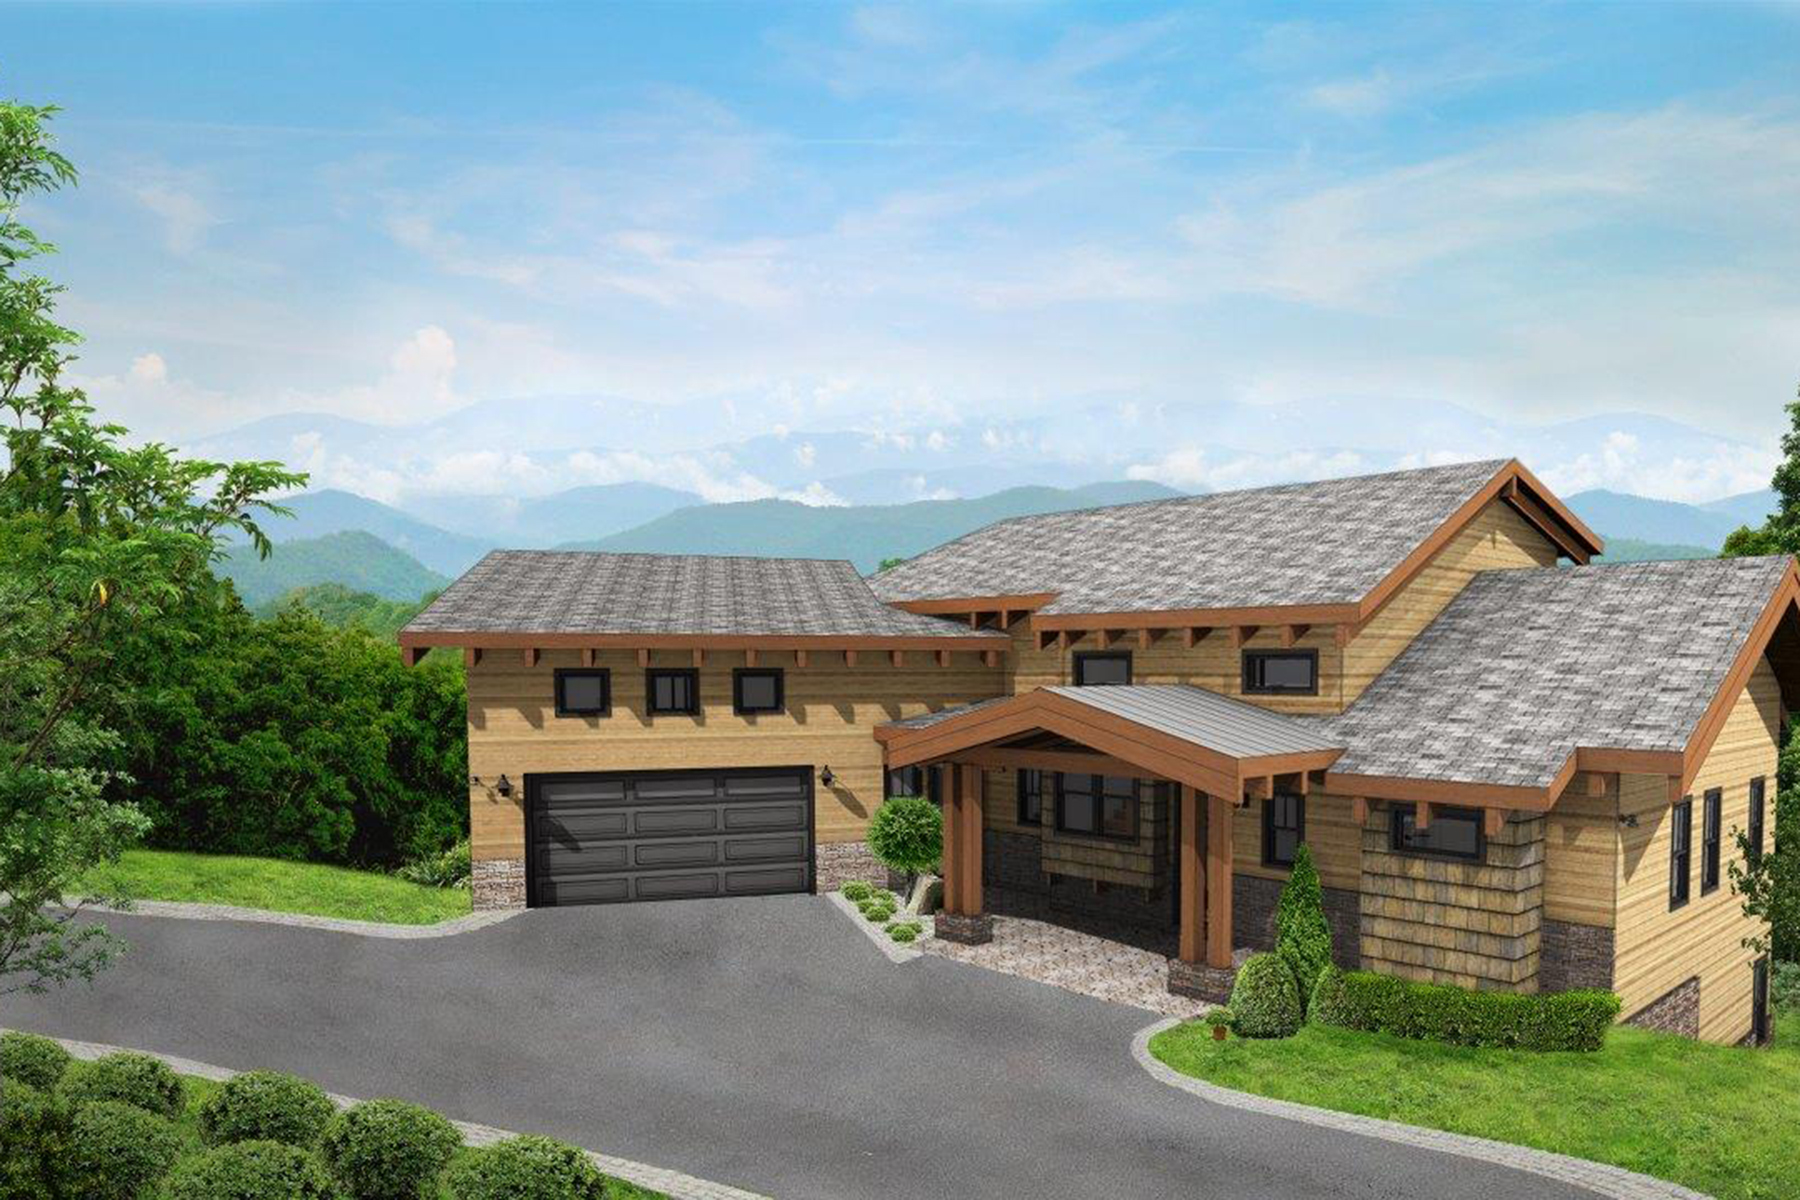 Single Family Homes for Active at BLUE RIDGE MOUNTAIN CLUB - BOONE Lot 210 Meadow Beauty Trl Boone, North Carolina 28607 United States